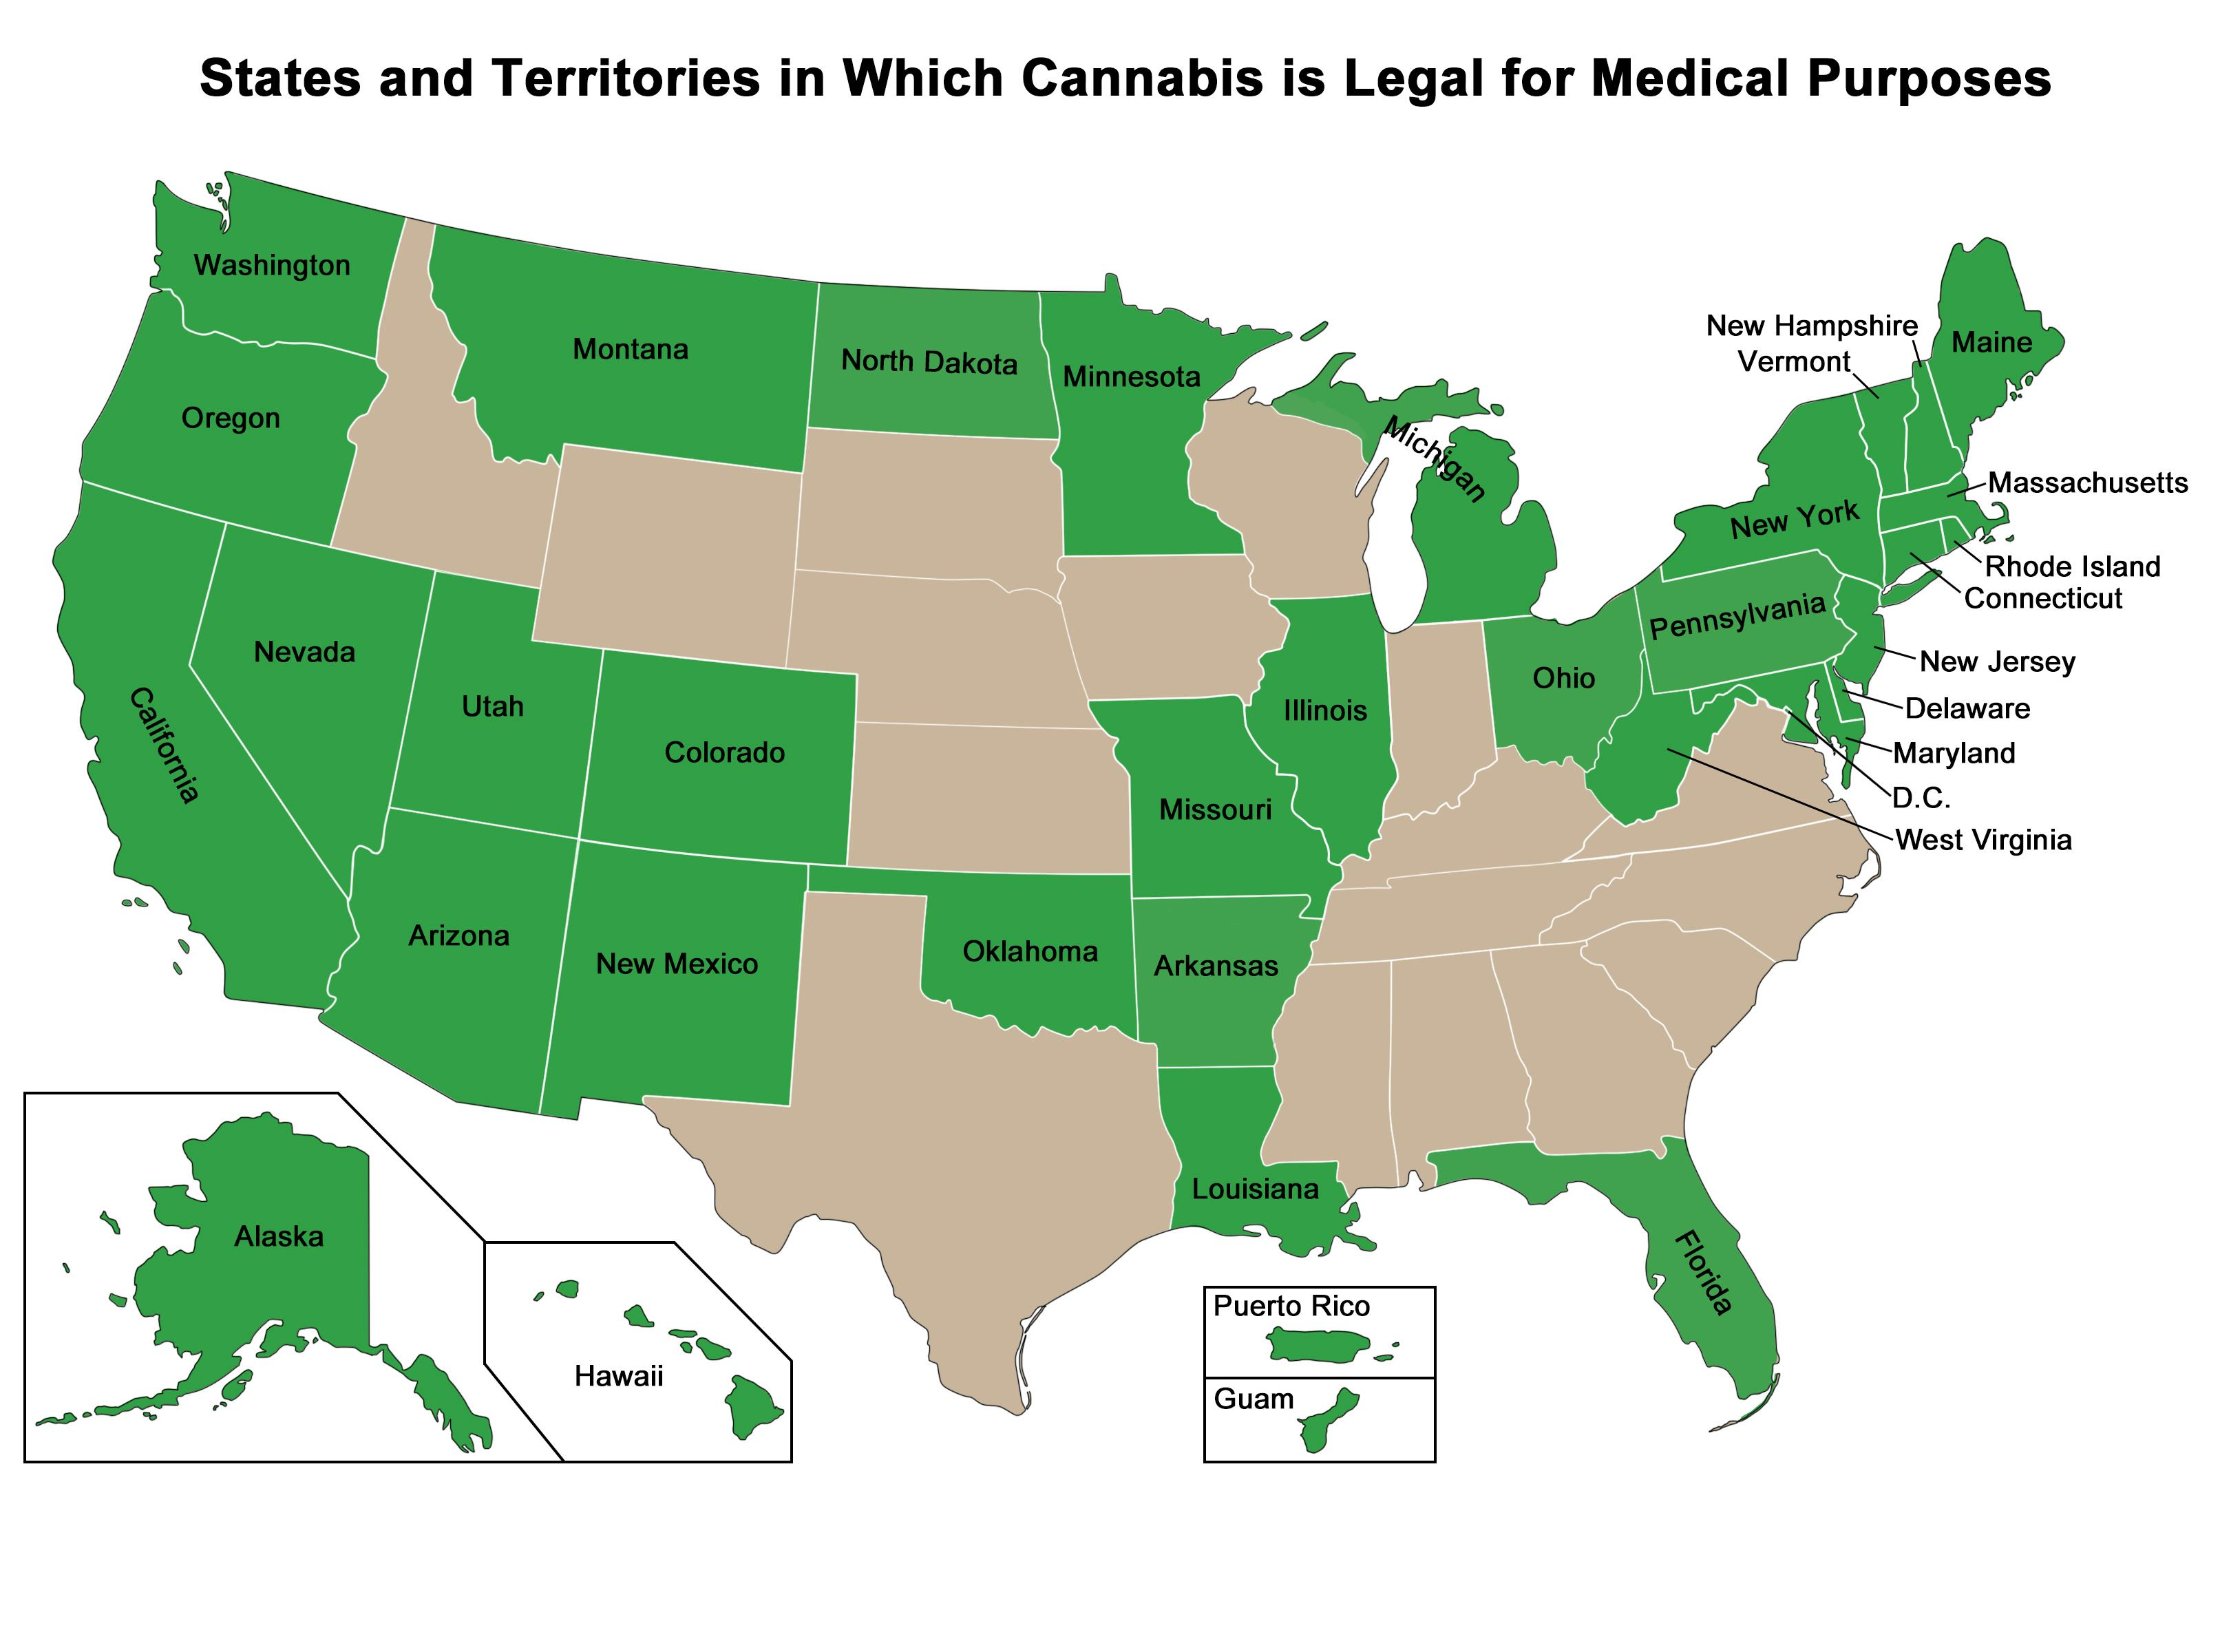 A map showing the U.S. states and territories that have approved the medical use of Cannabis.